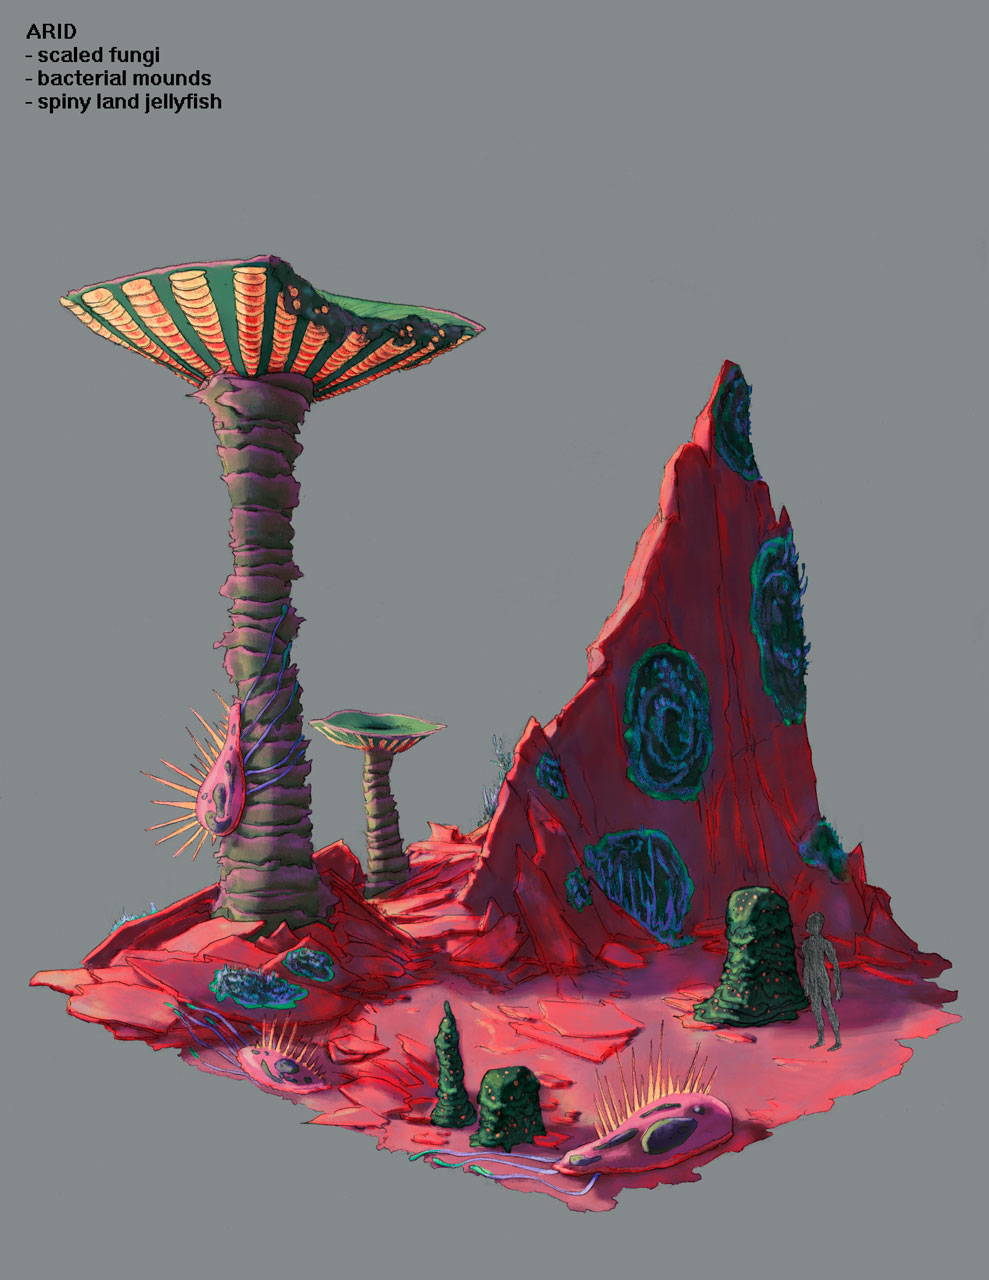 Arid Environment Design Concept Art for Pillar of Fire